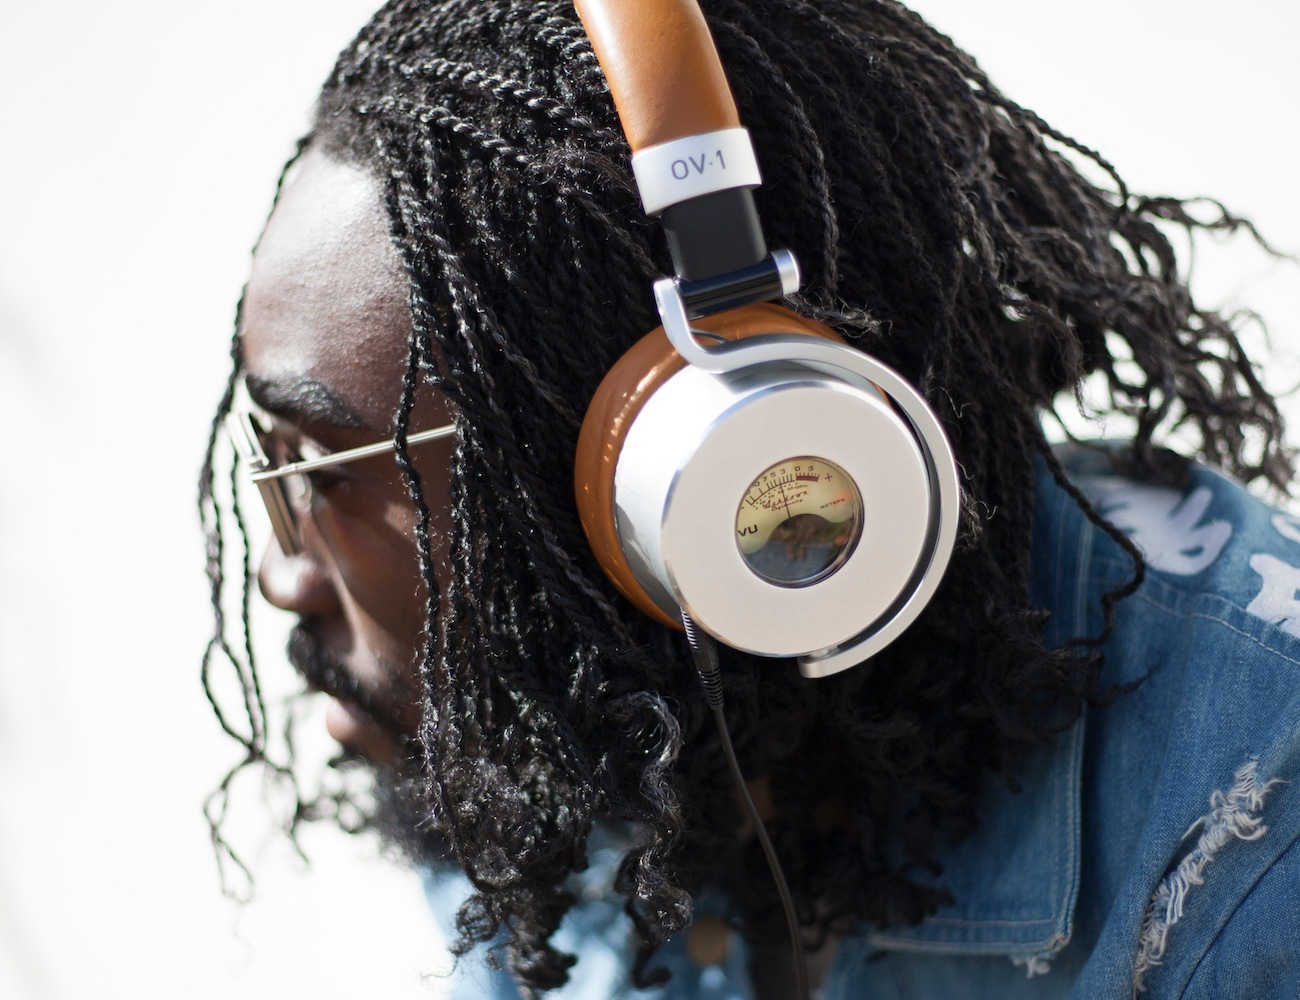 OV-1 Luxury Headphones by Meters Music